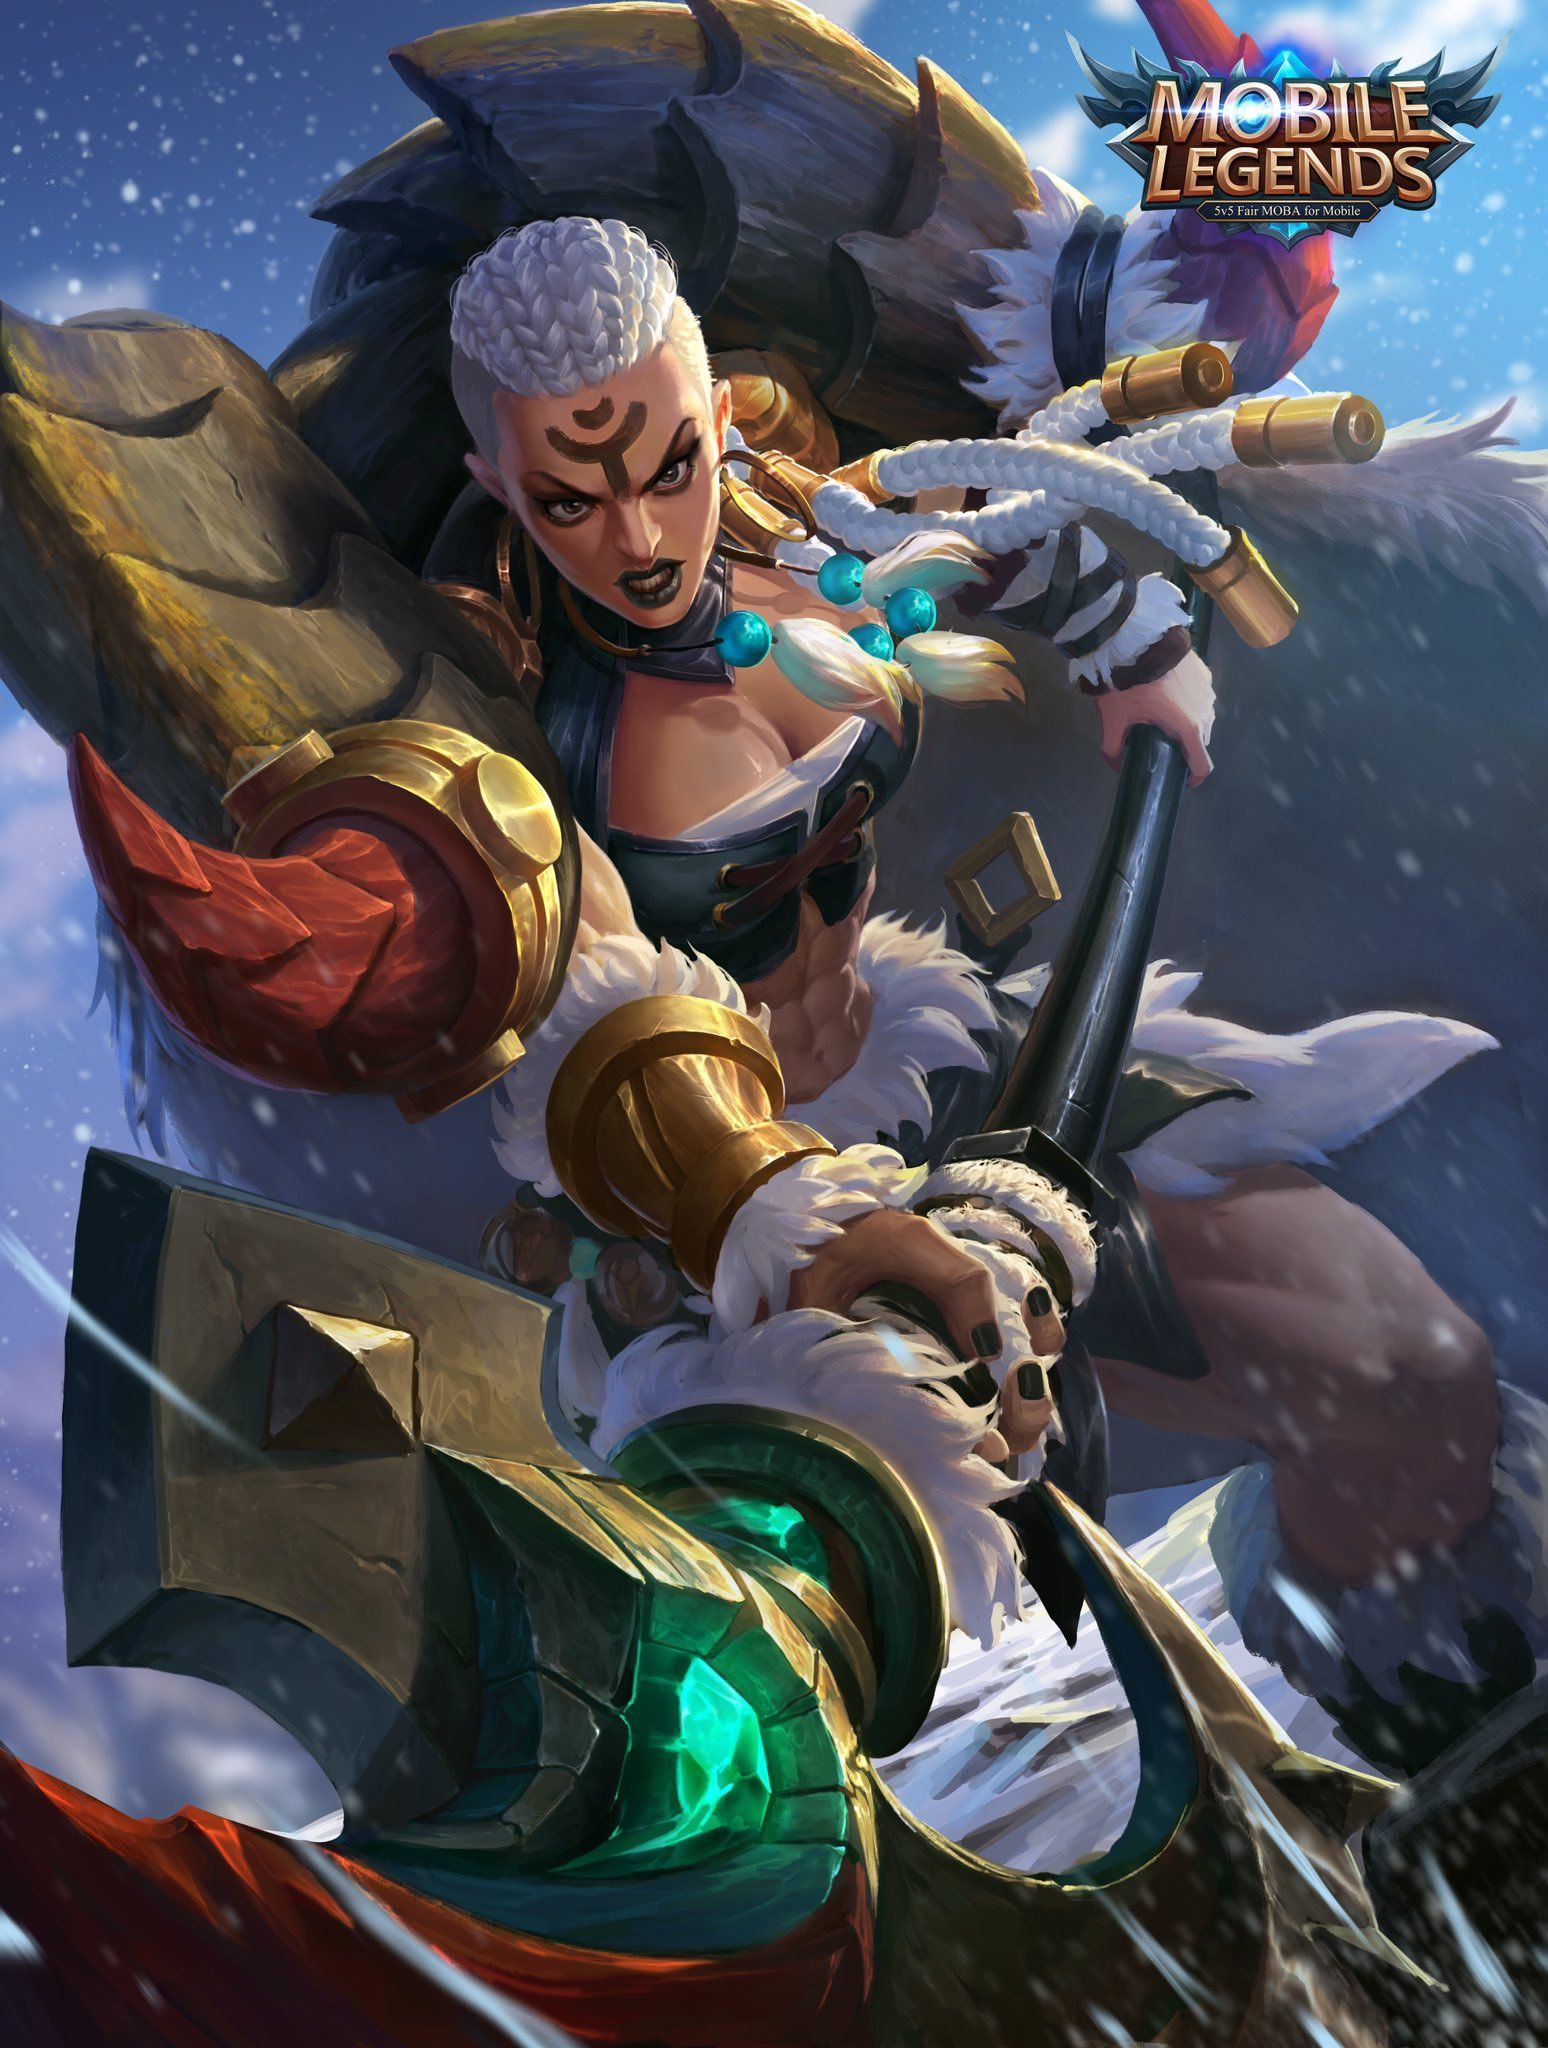 Wallpaper-Mobile-Legends-Power-of-Wildness